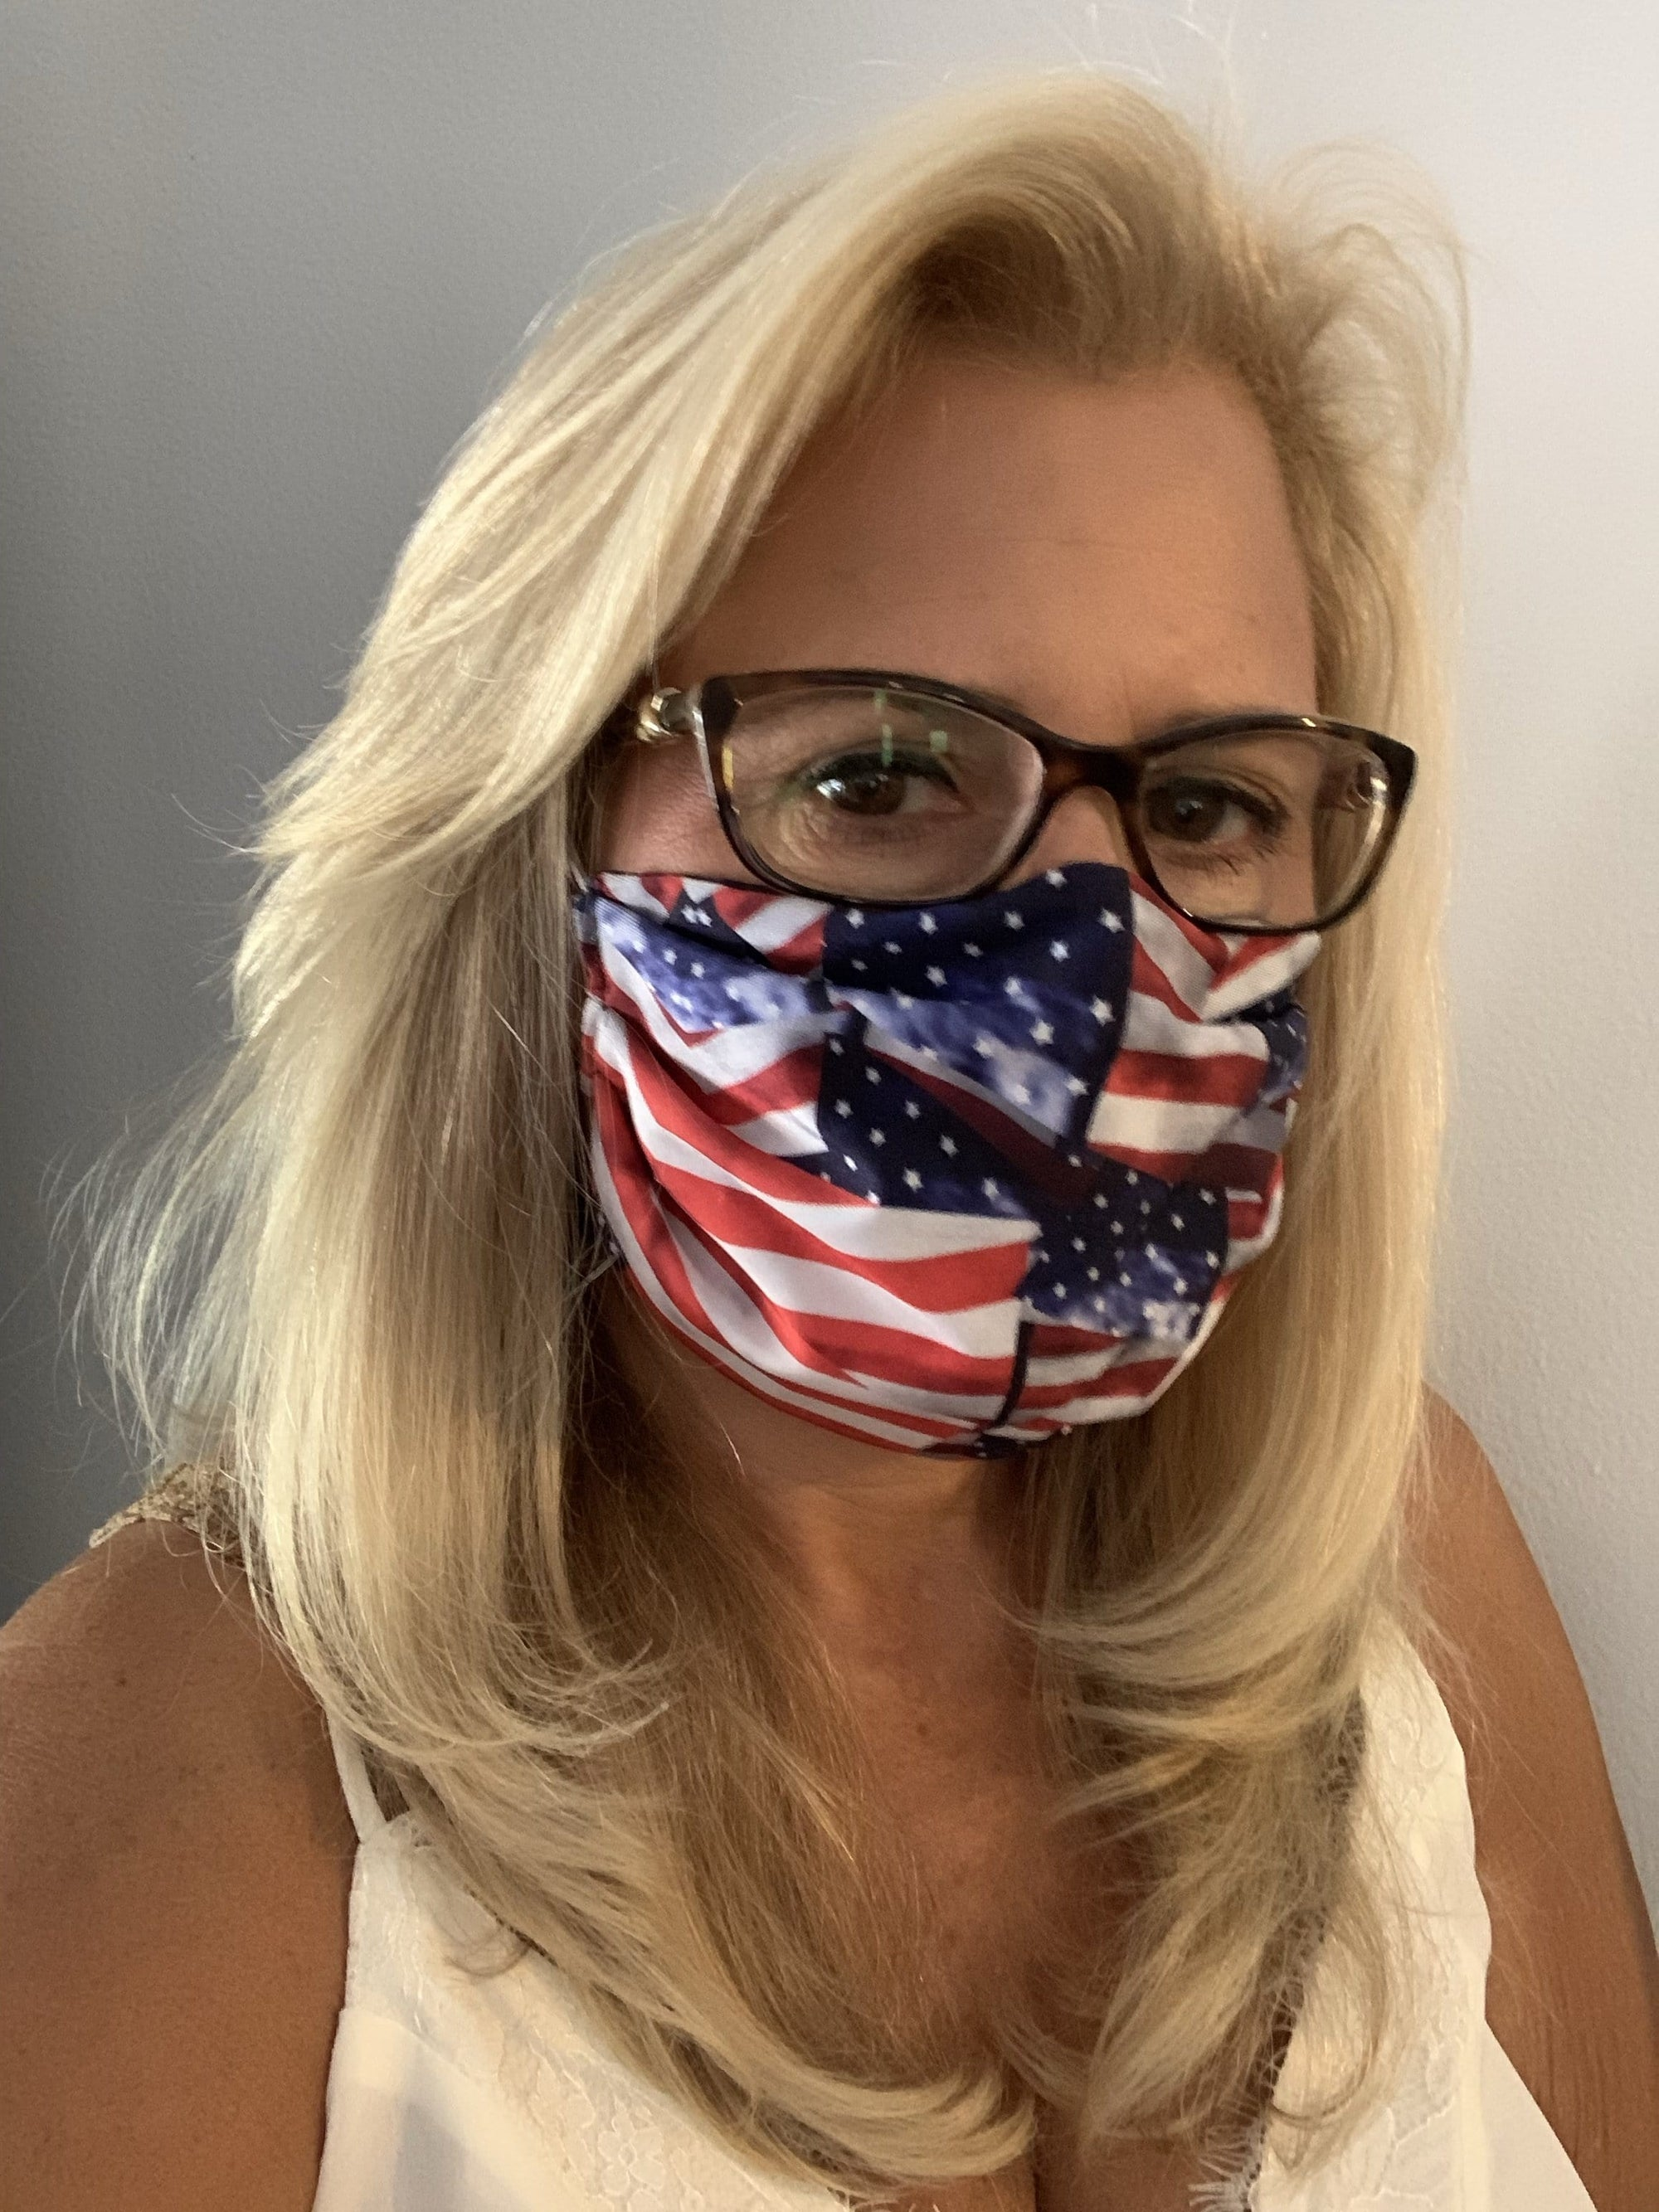 Stacy Bradley Design Face Mask American Flag equestrian team apparel online tack store mobile tack store custom farm apparel custom show stable clothing equestrian lifestyle horse show clothing riding clothes horses equestrian tack store